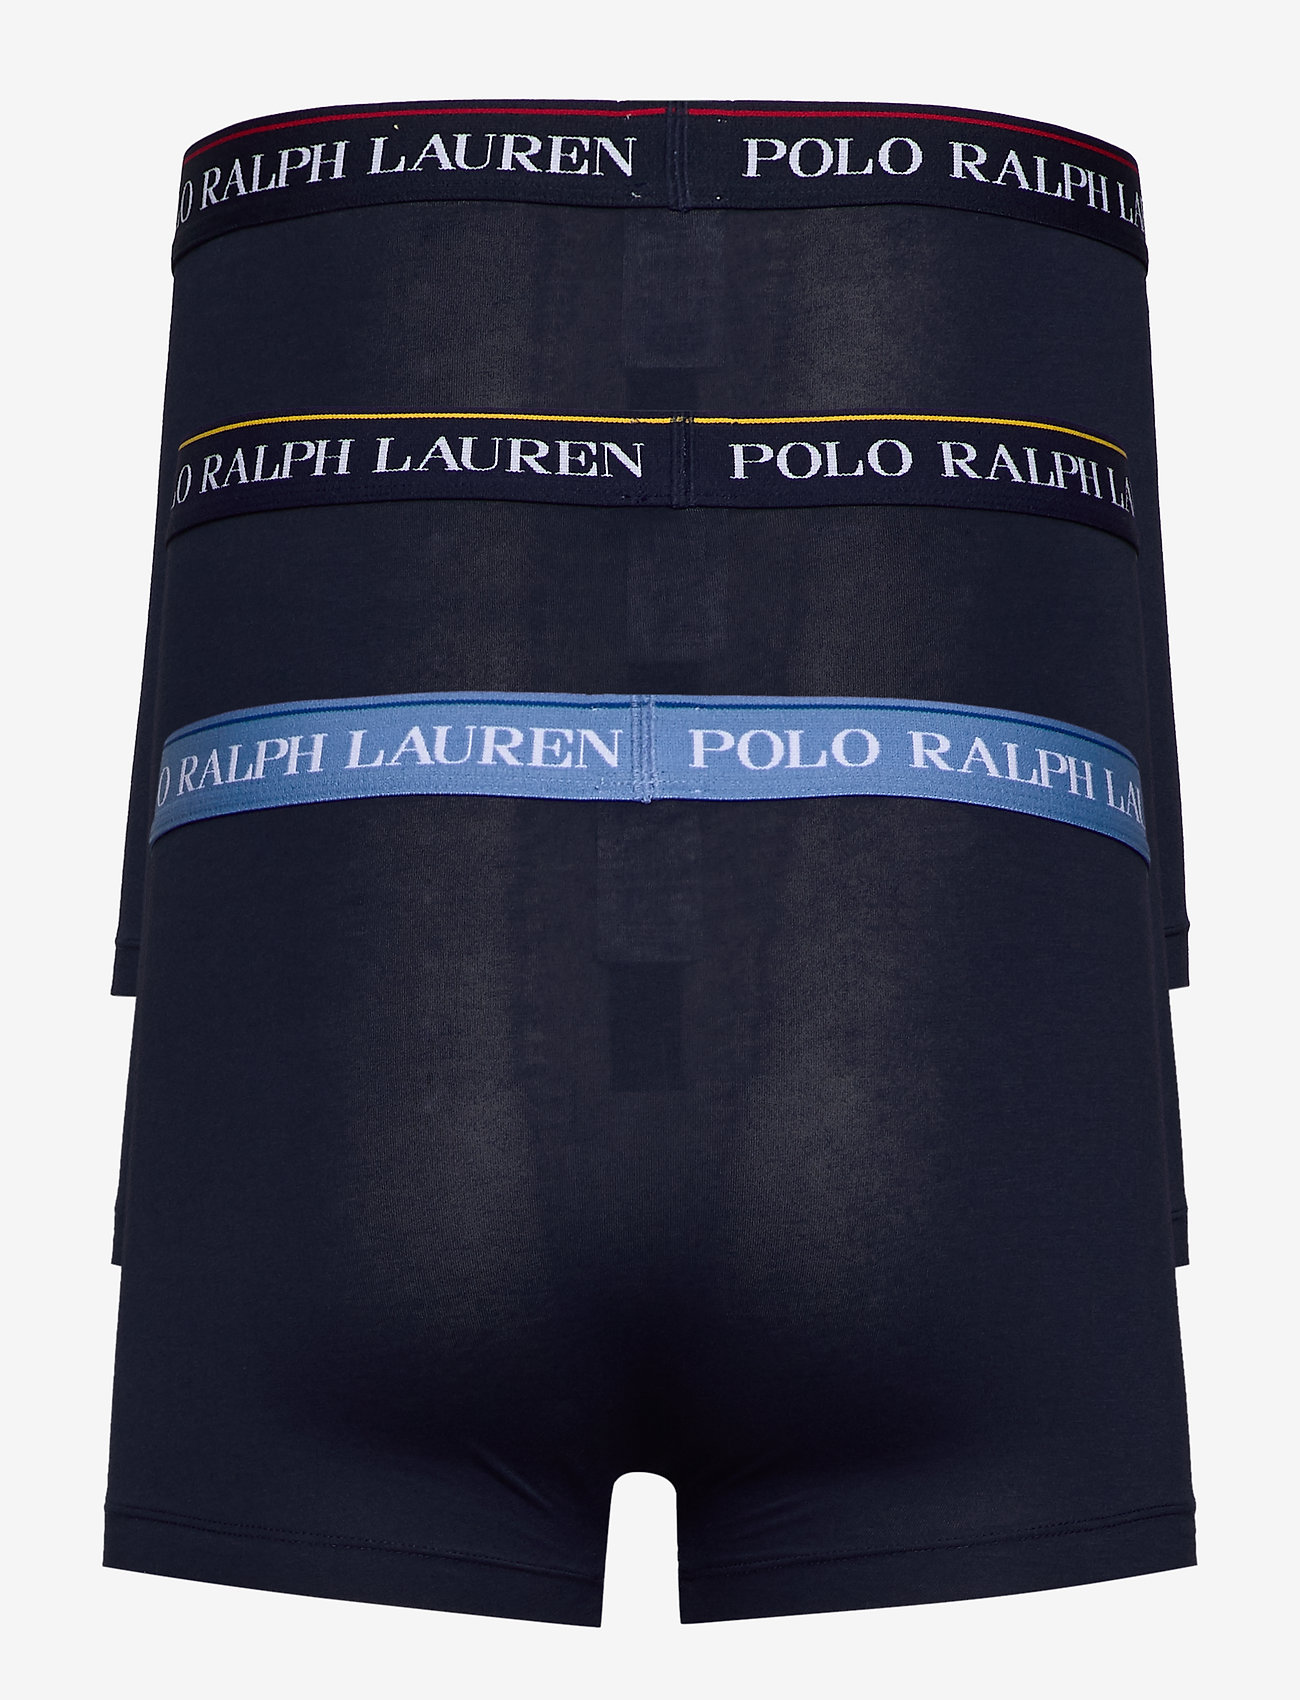 Polo Ralph Lauren Underwear - Stretch-Cotton Trunk 3-Pack - boxershorts - 3pk nvy/ylw nvy/r - 1